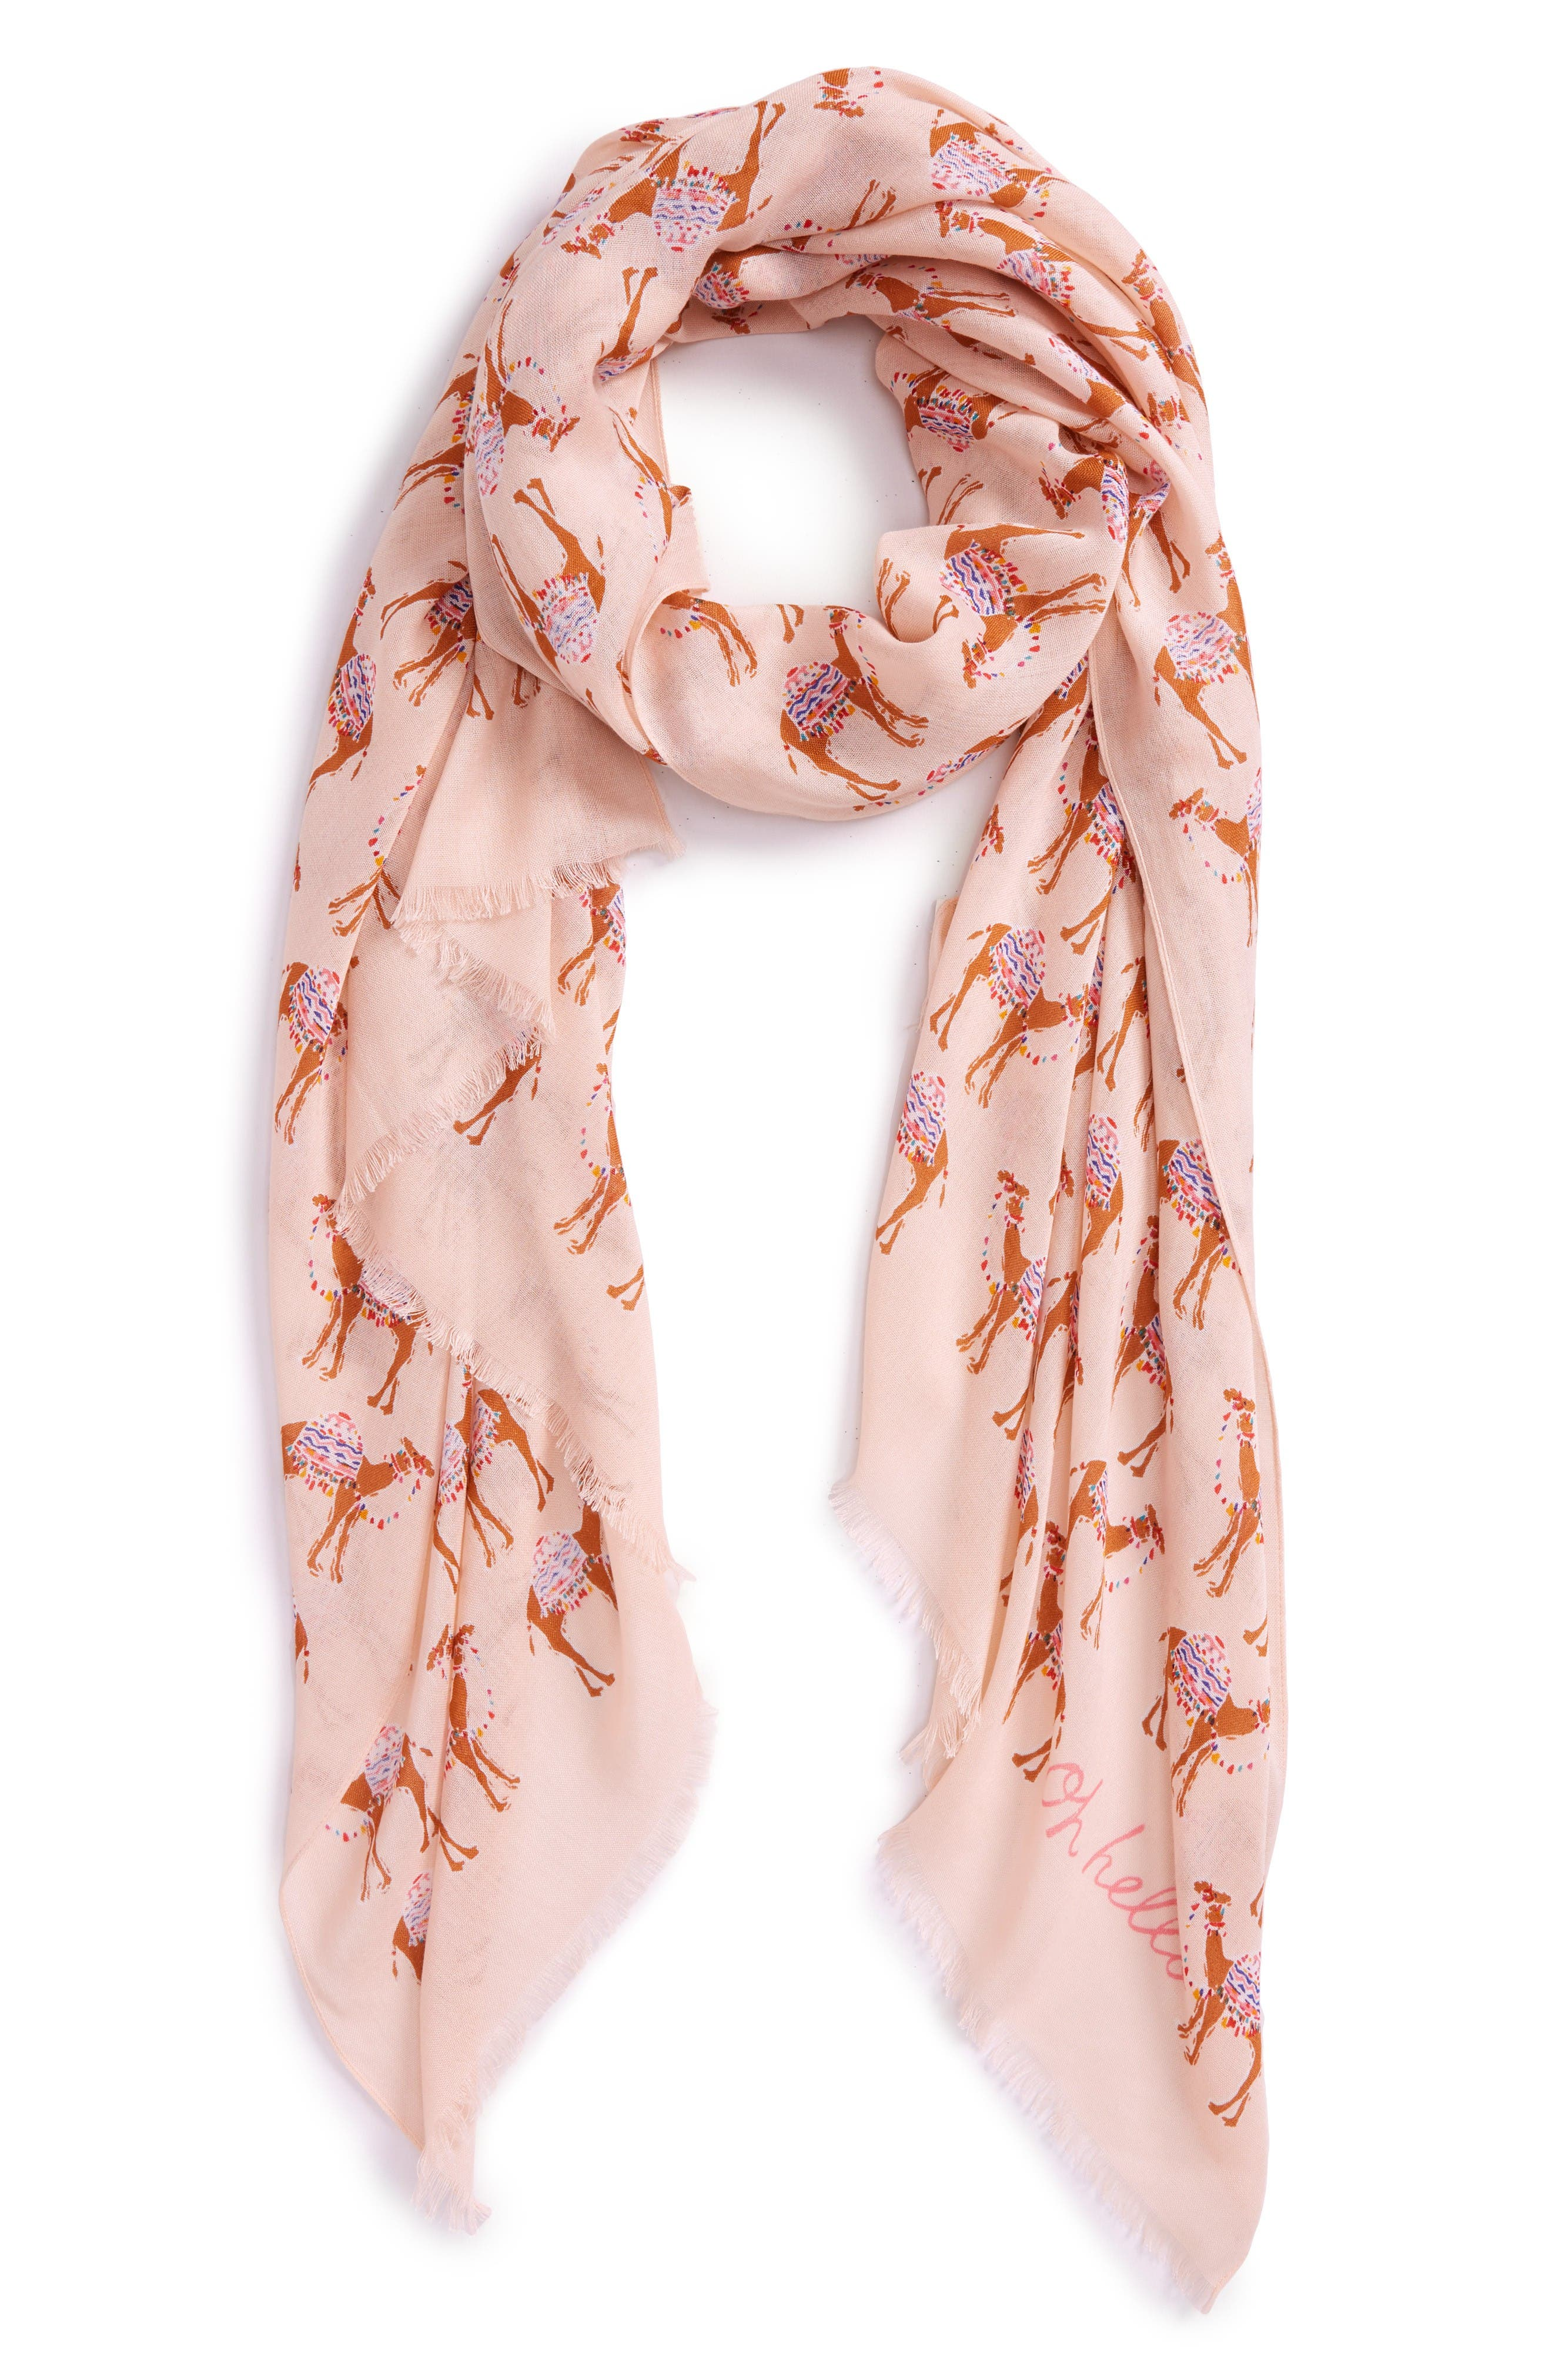 KATE SPADE NEW YORK camel march scarf